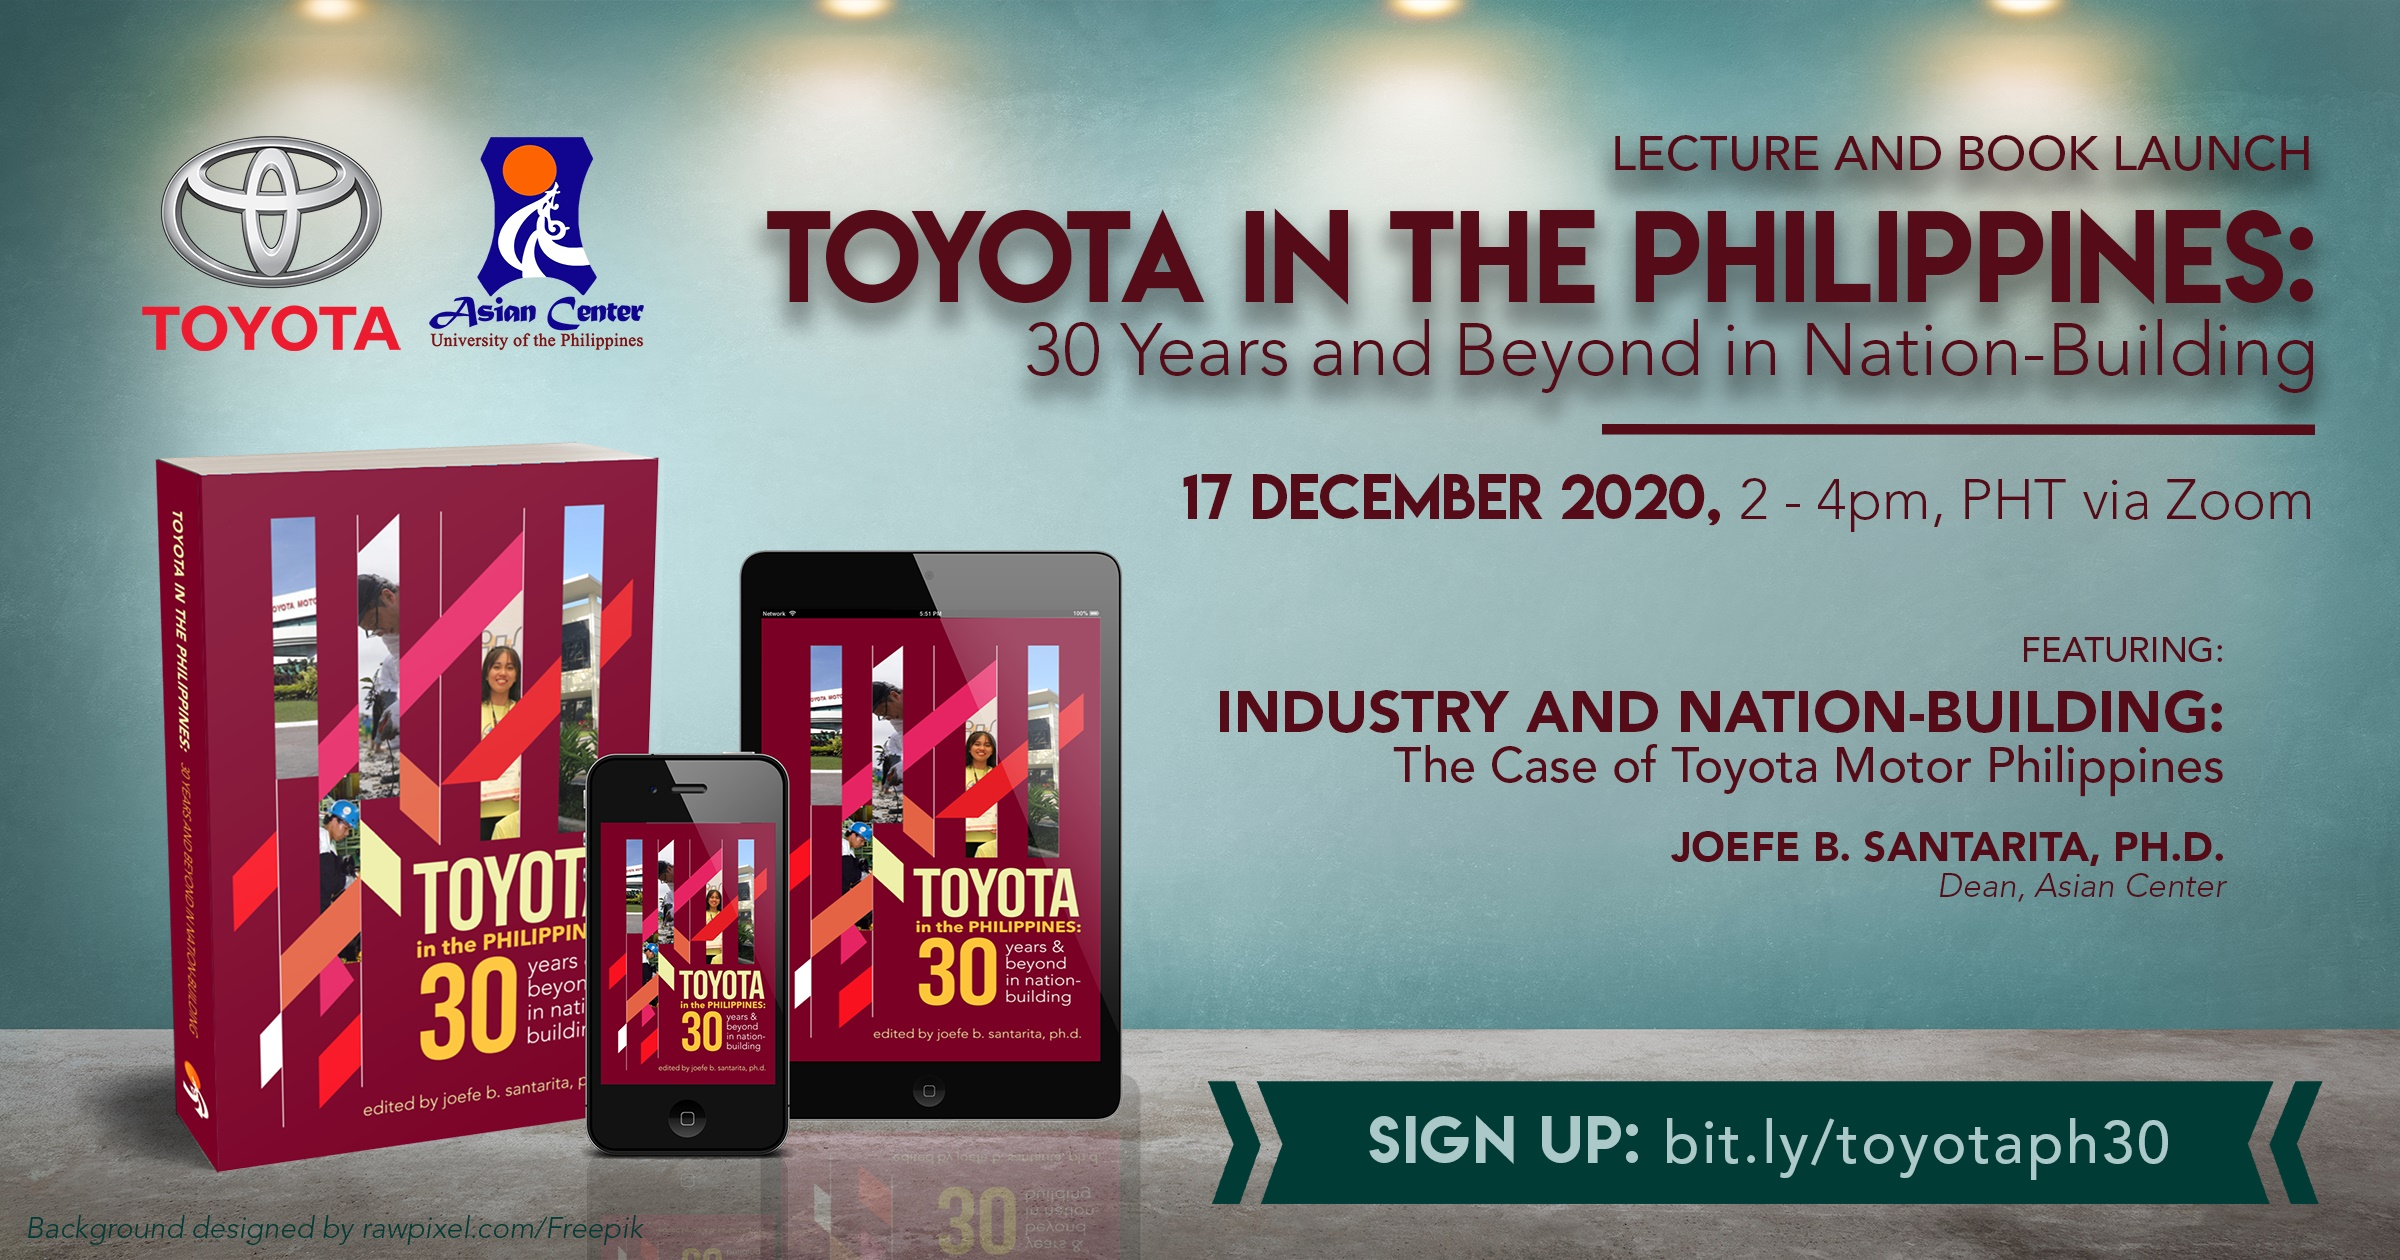 Toyota in the Philippines: 30 Years and Beyond in Nation-Building | Lecture and Book Launch (17 Dec 2020)